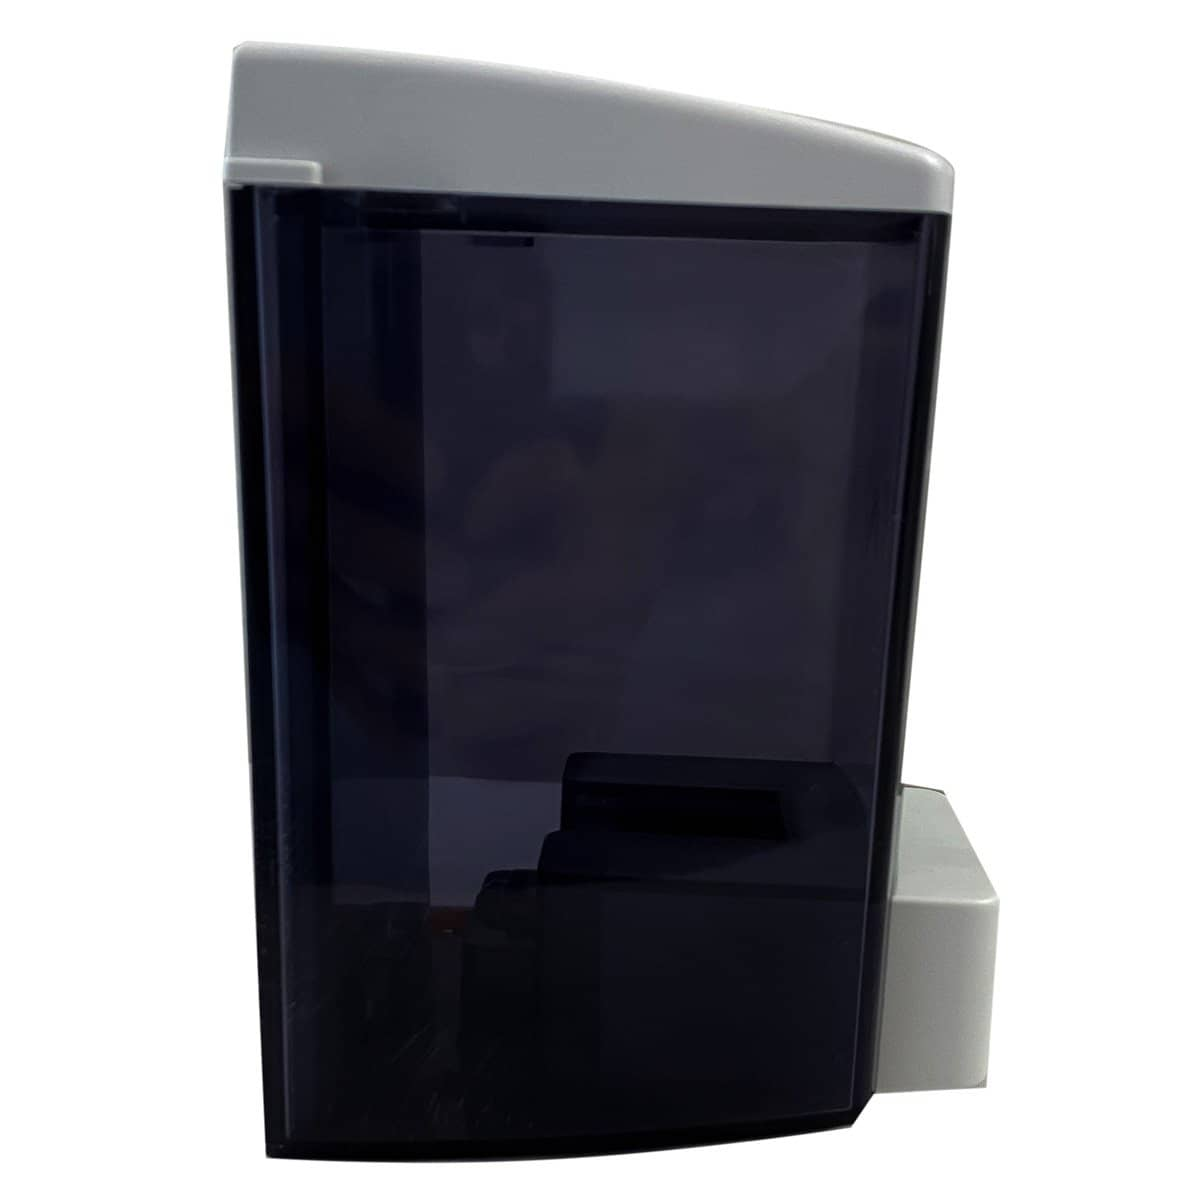 VISTA 30 OZ Liquid Dispenser - SD1007 - TotalRestroom.com